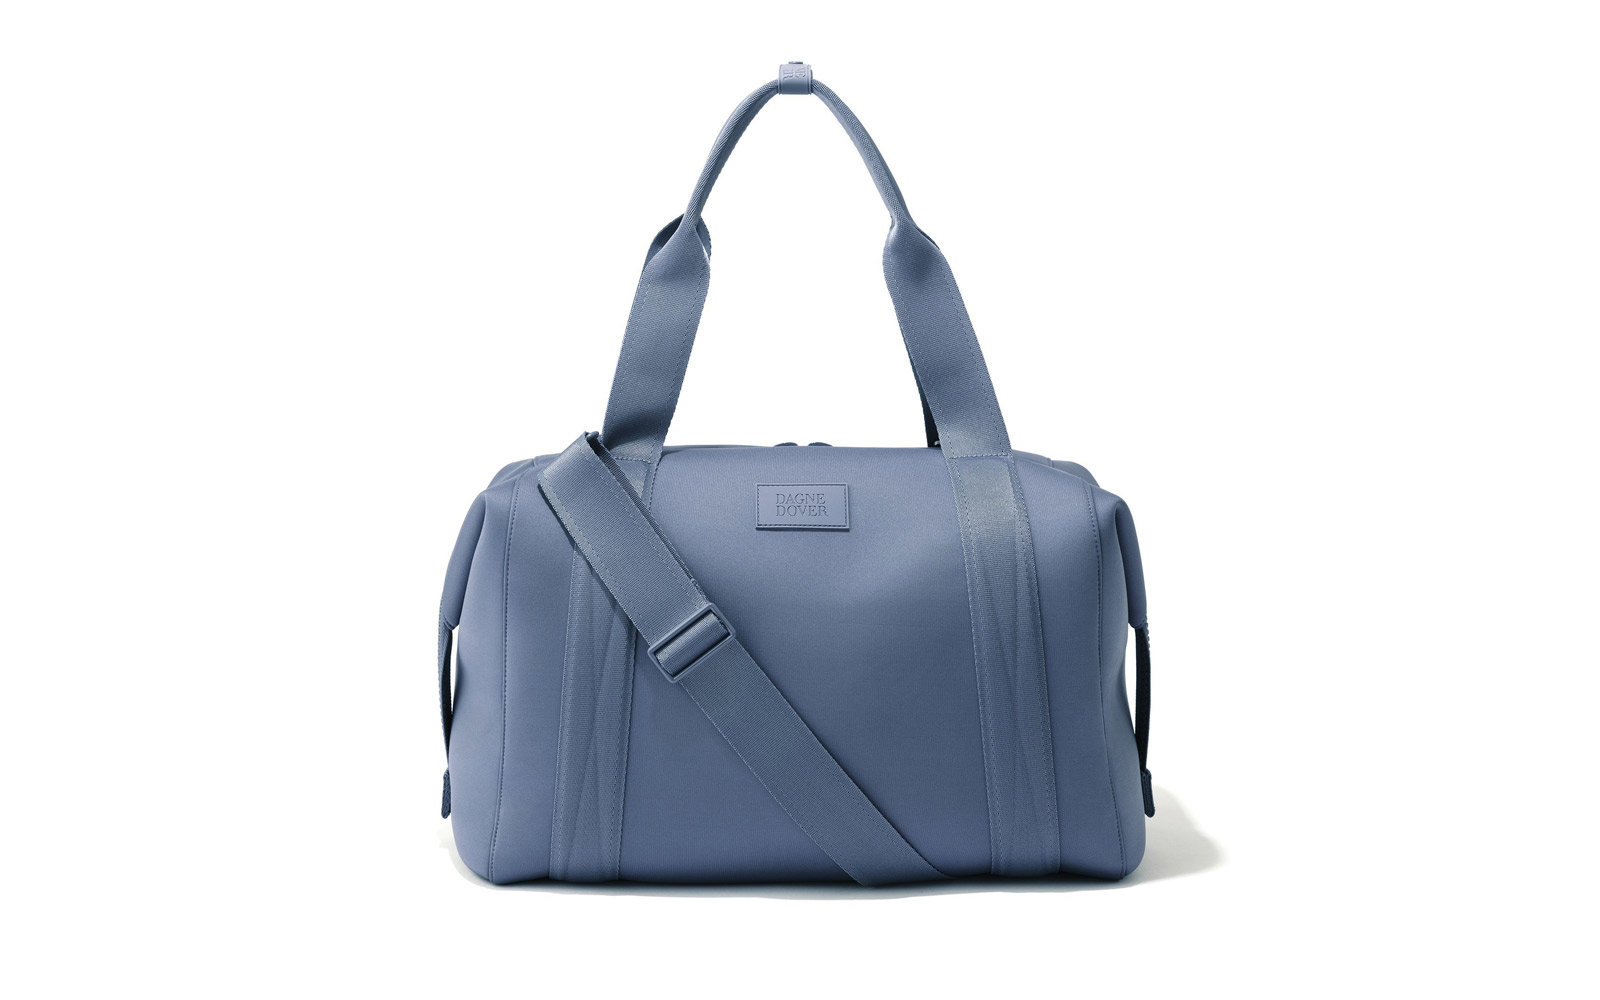 c29168914df2 Dagne Dover Landon Carryall in Large. Weekender Bags